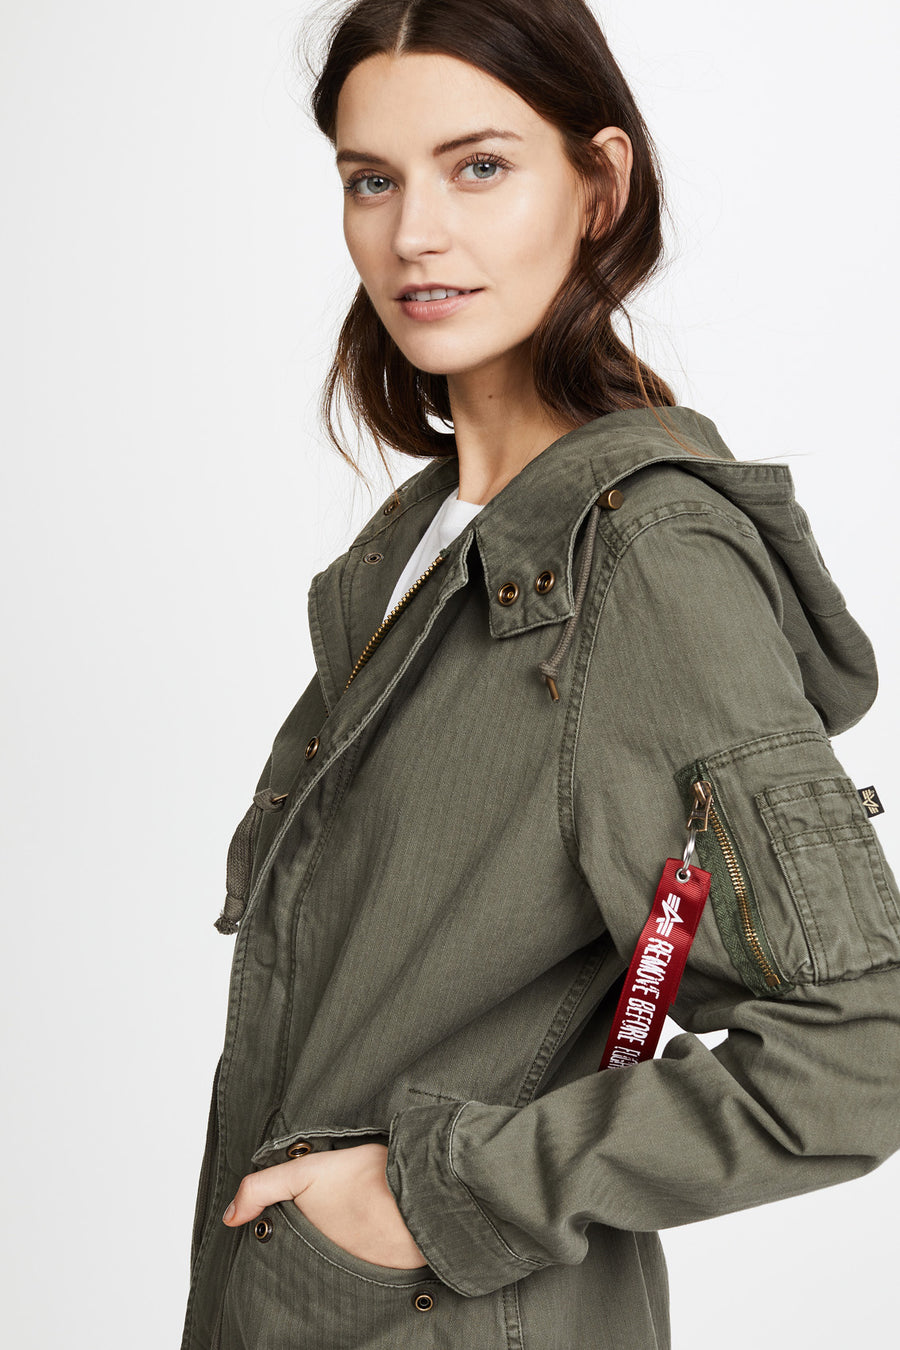 Swoop Fishtail Field Coat - Olive